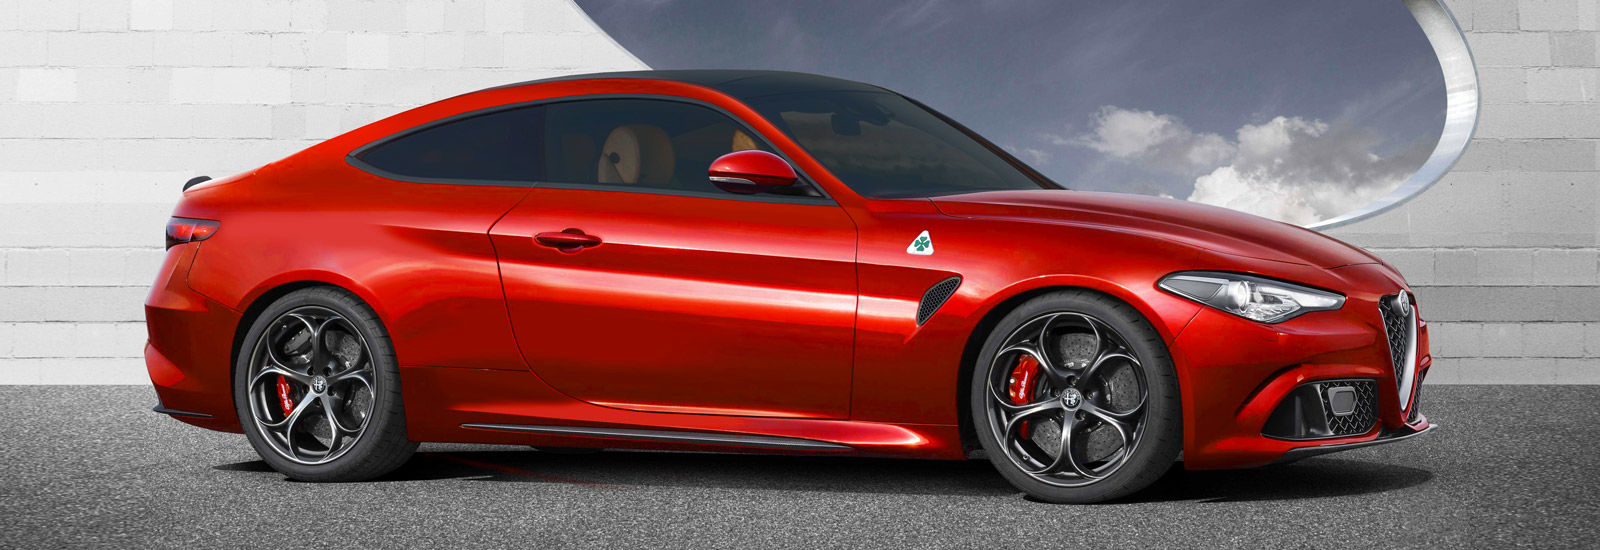 2017 alfa romeo giulia coupe price specs and release date. Black Bedroom Furniture Sets. Home Design Ideas